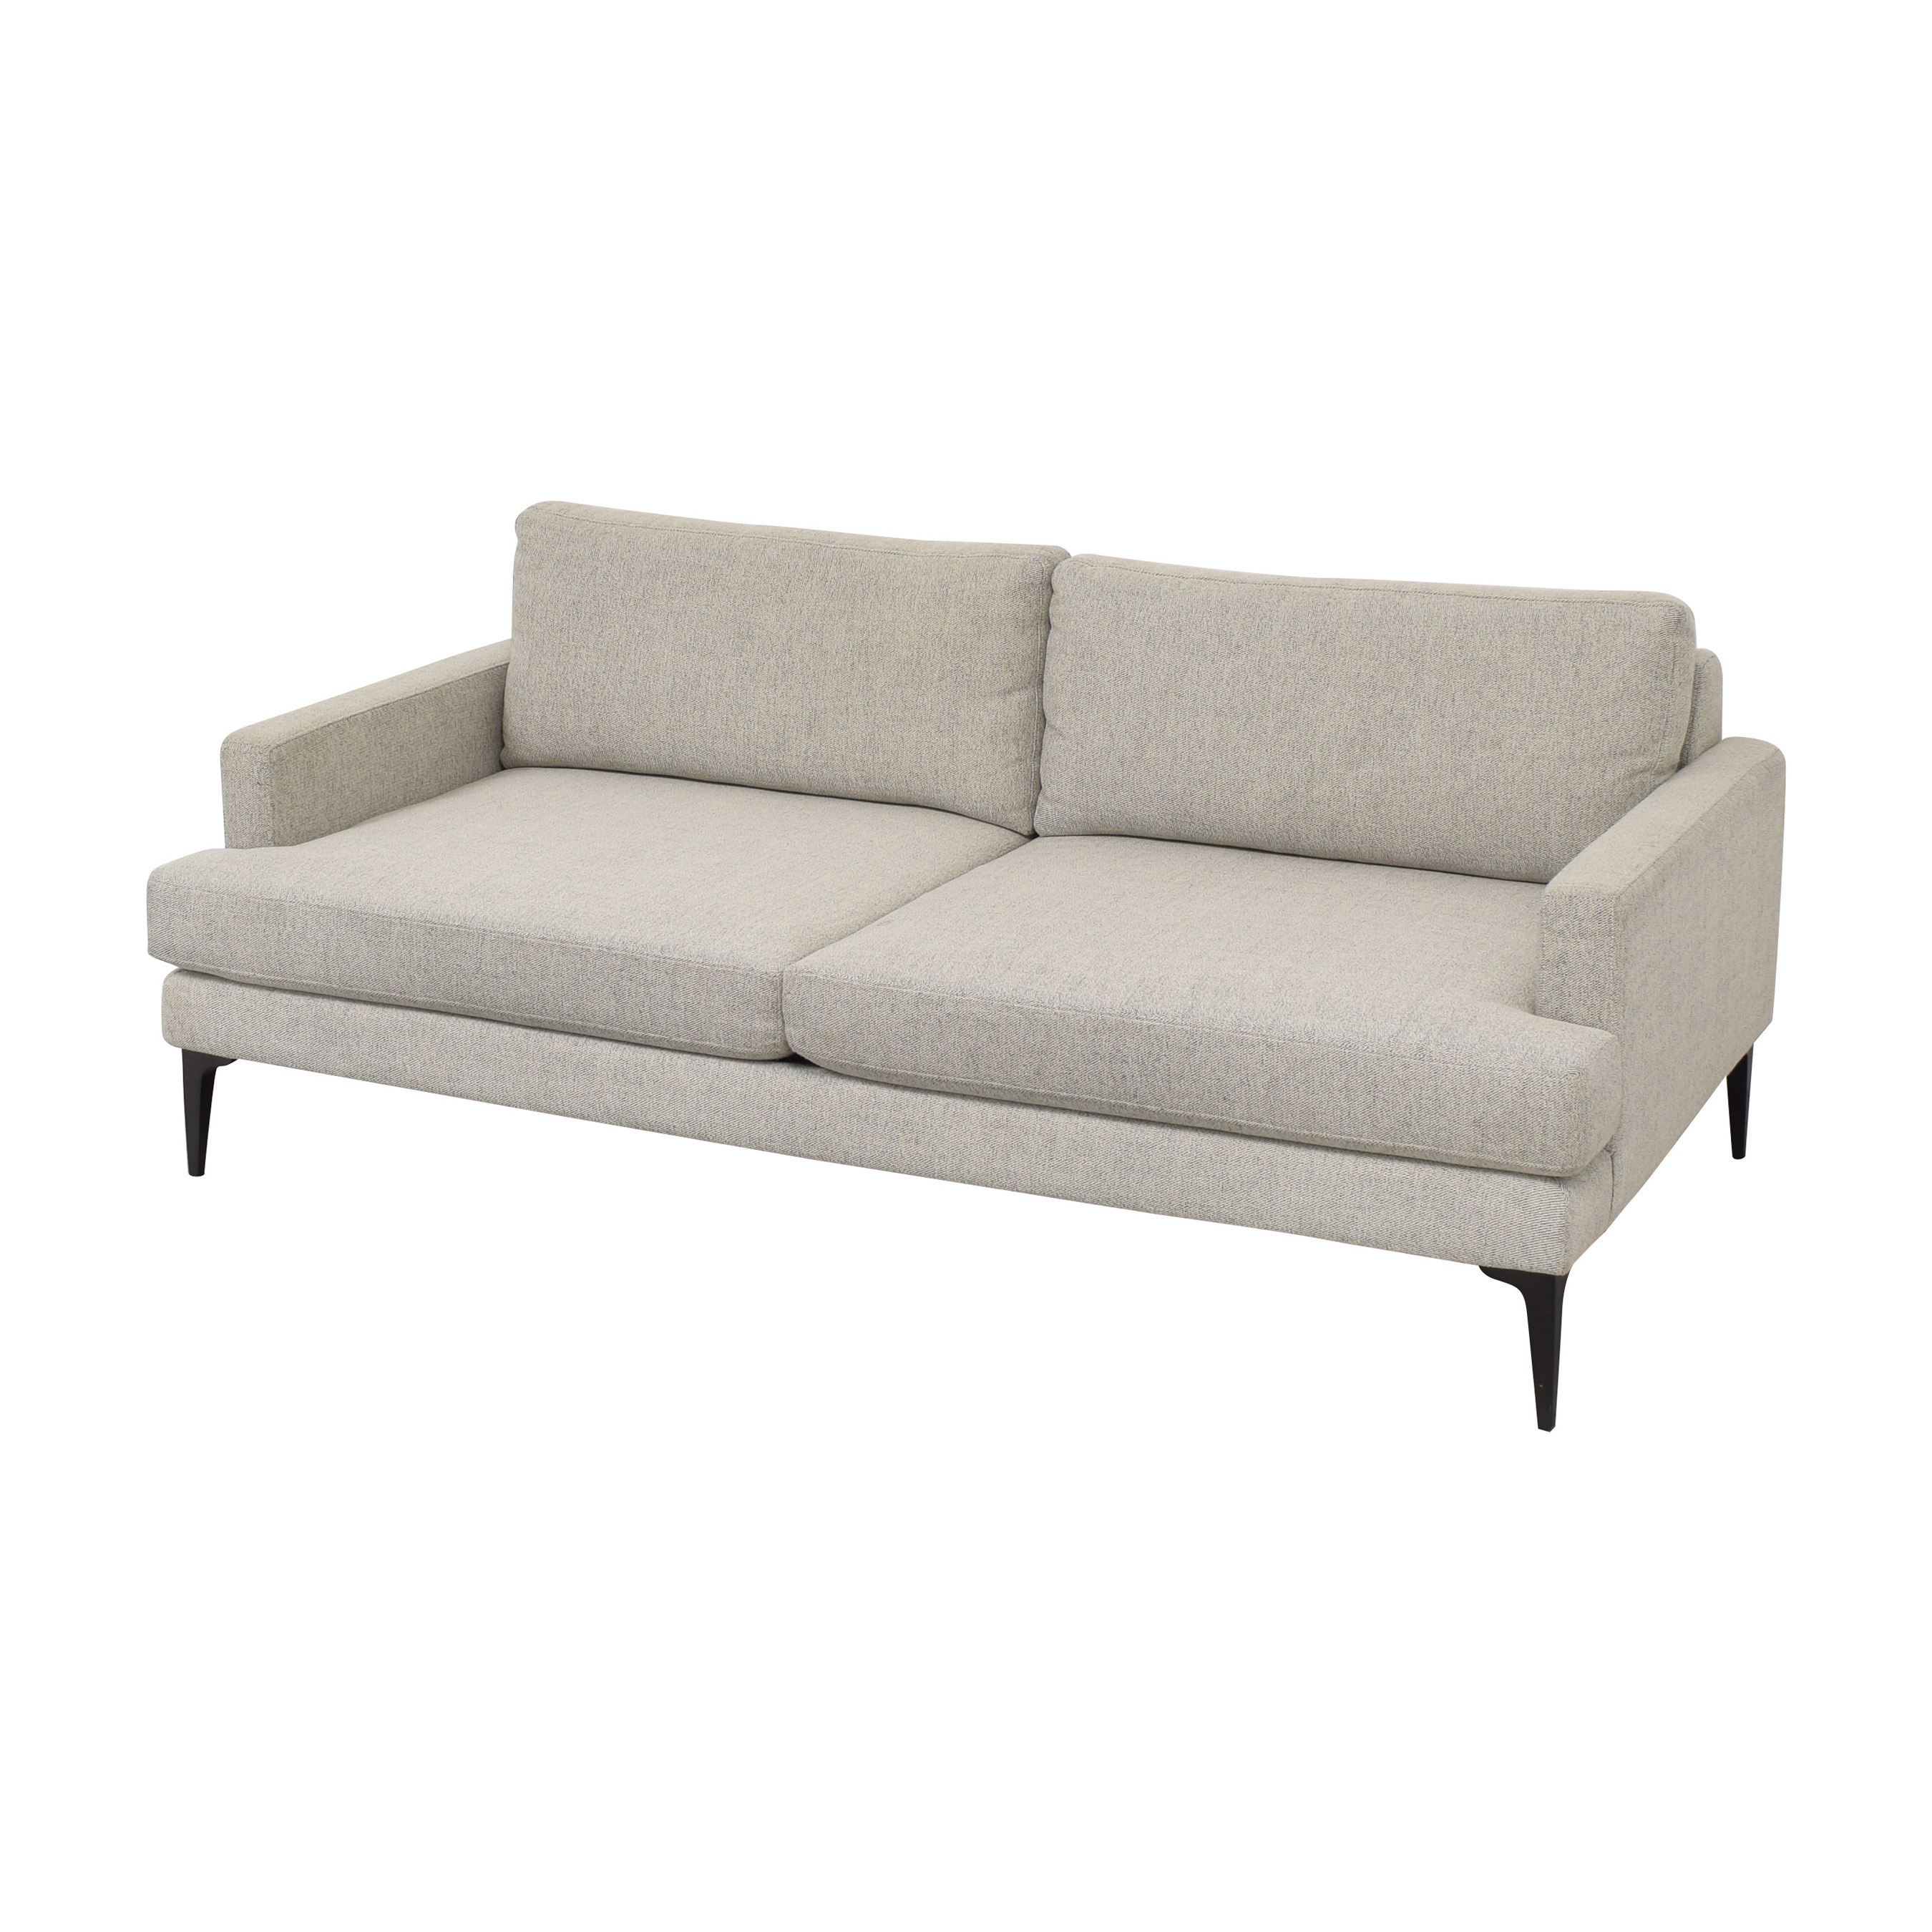 buy West Elm Andes Sofa West Elm Sofas